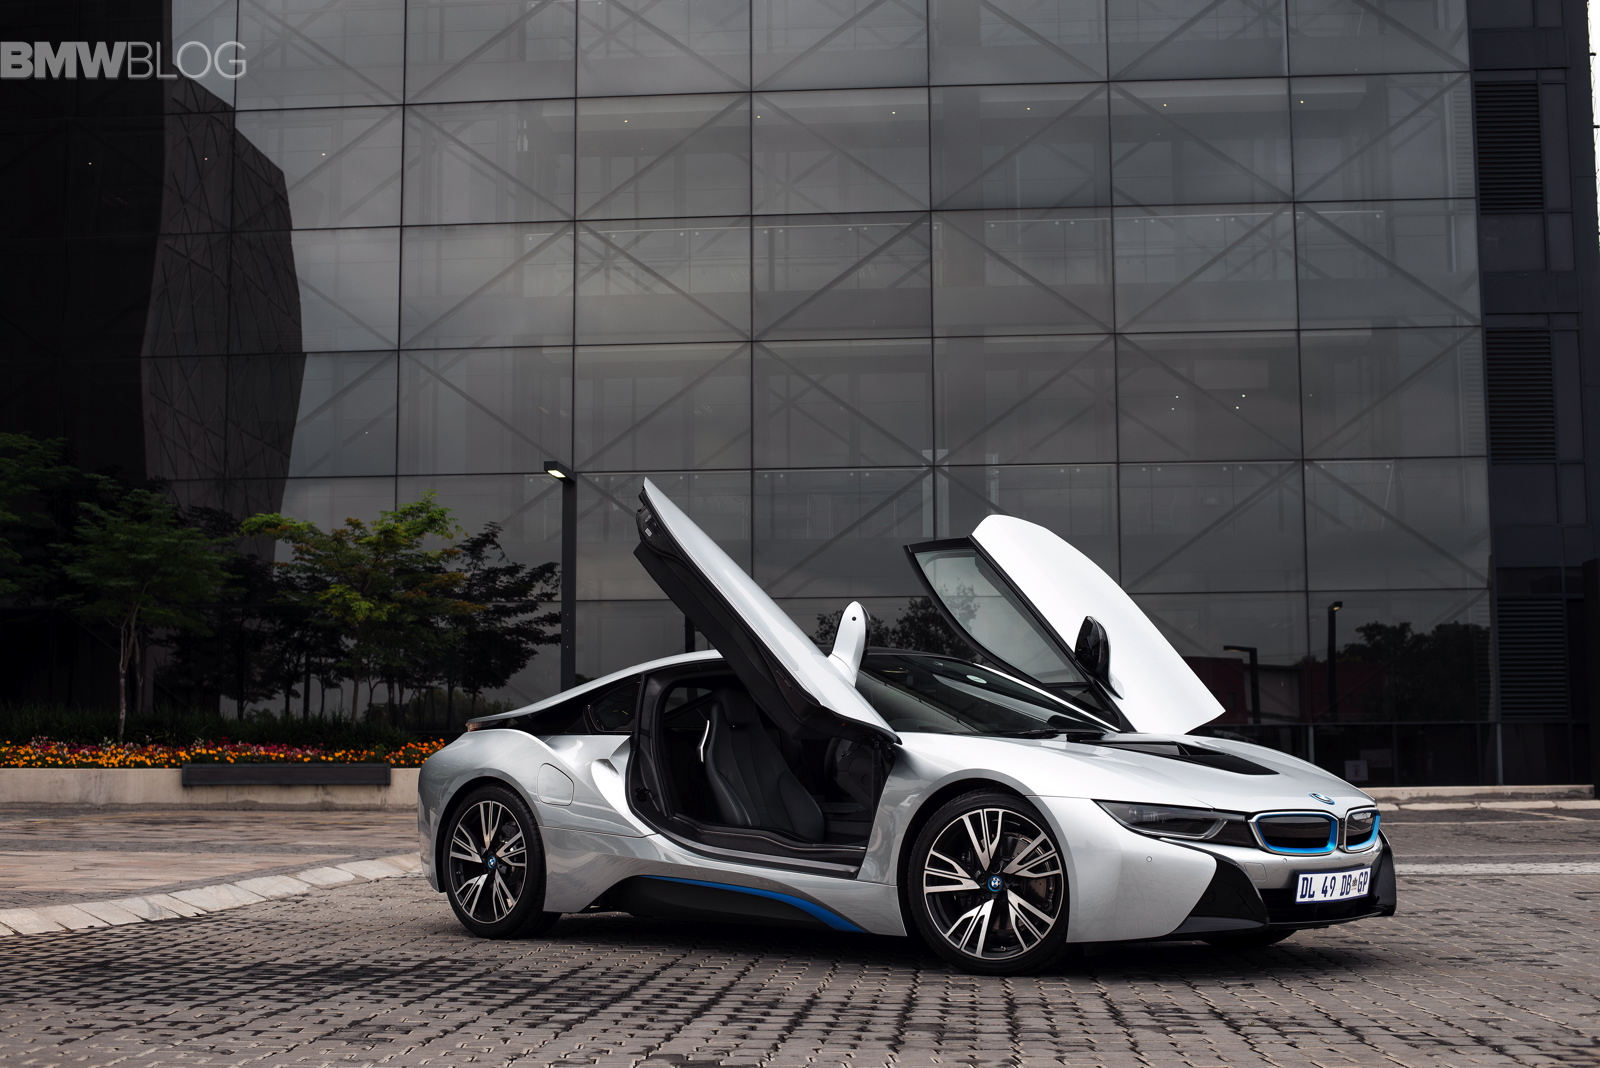 Bmw I8 Images South Africa 45 750x501